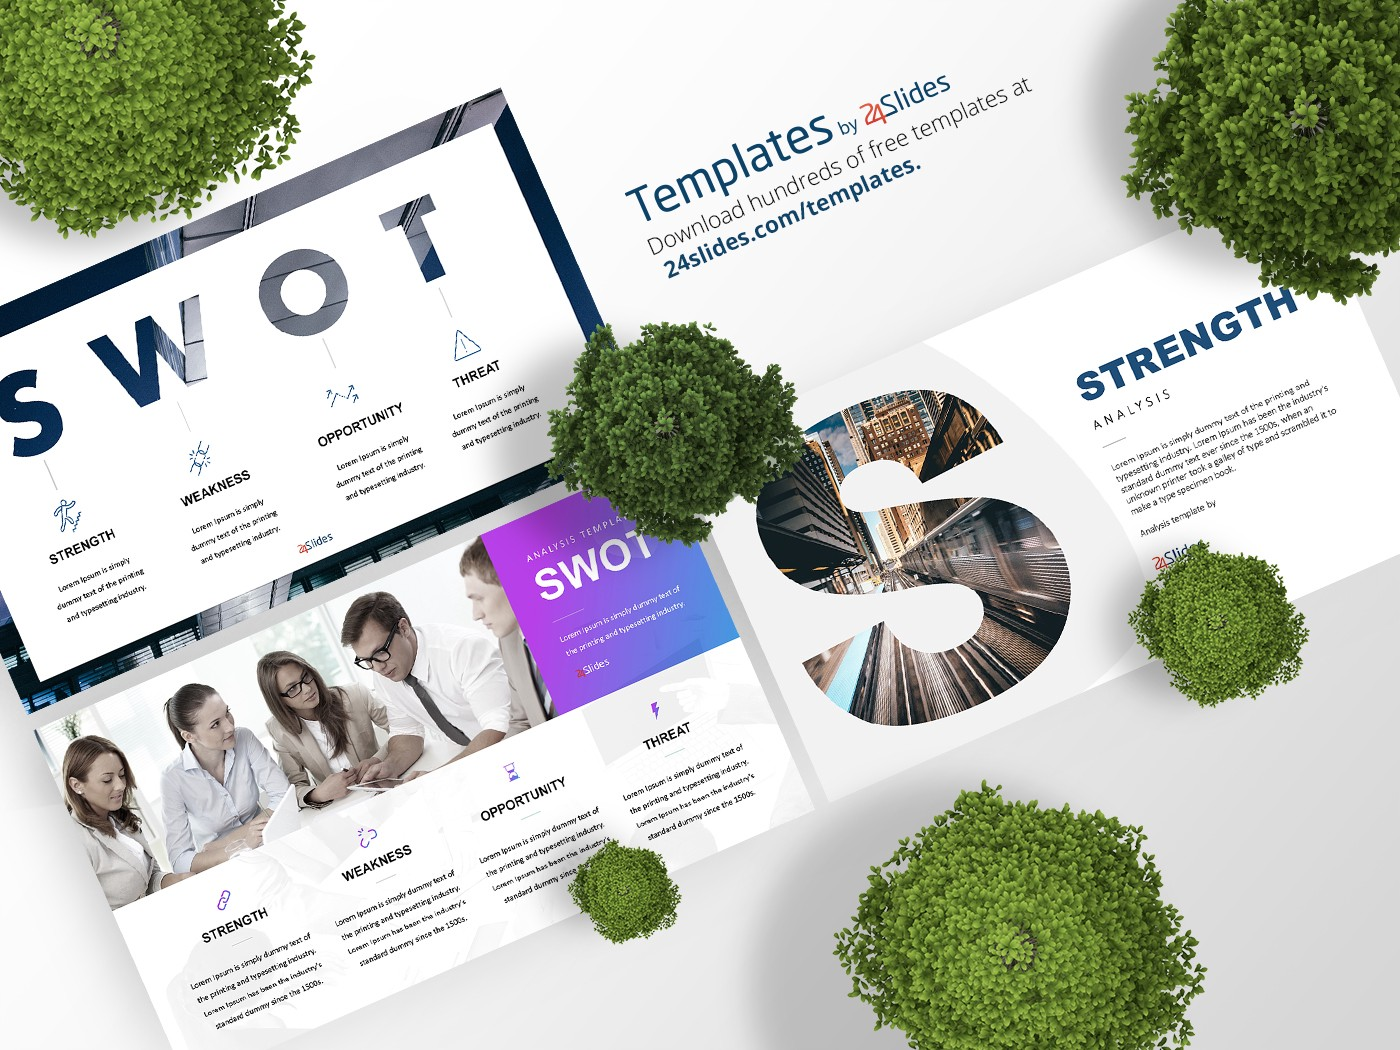 Swot analysis powerpoint templates free download free swot analysis powerpoint templates free download toneelgroepblik Gallery